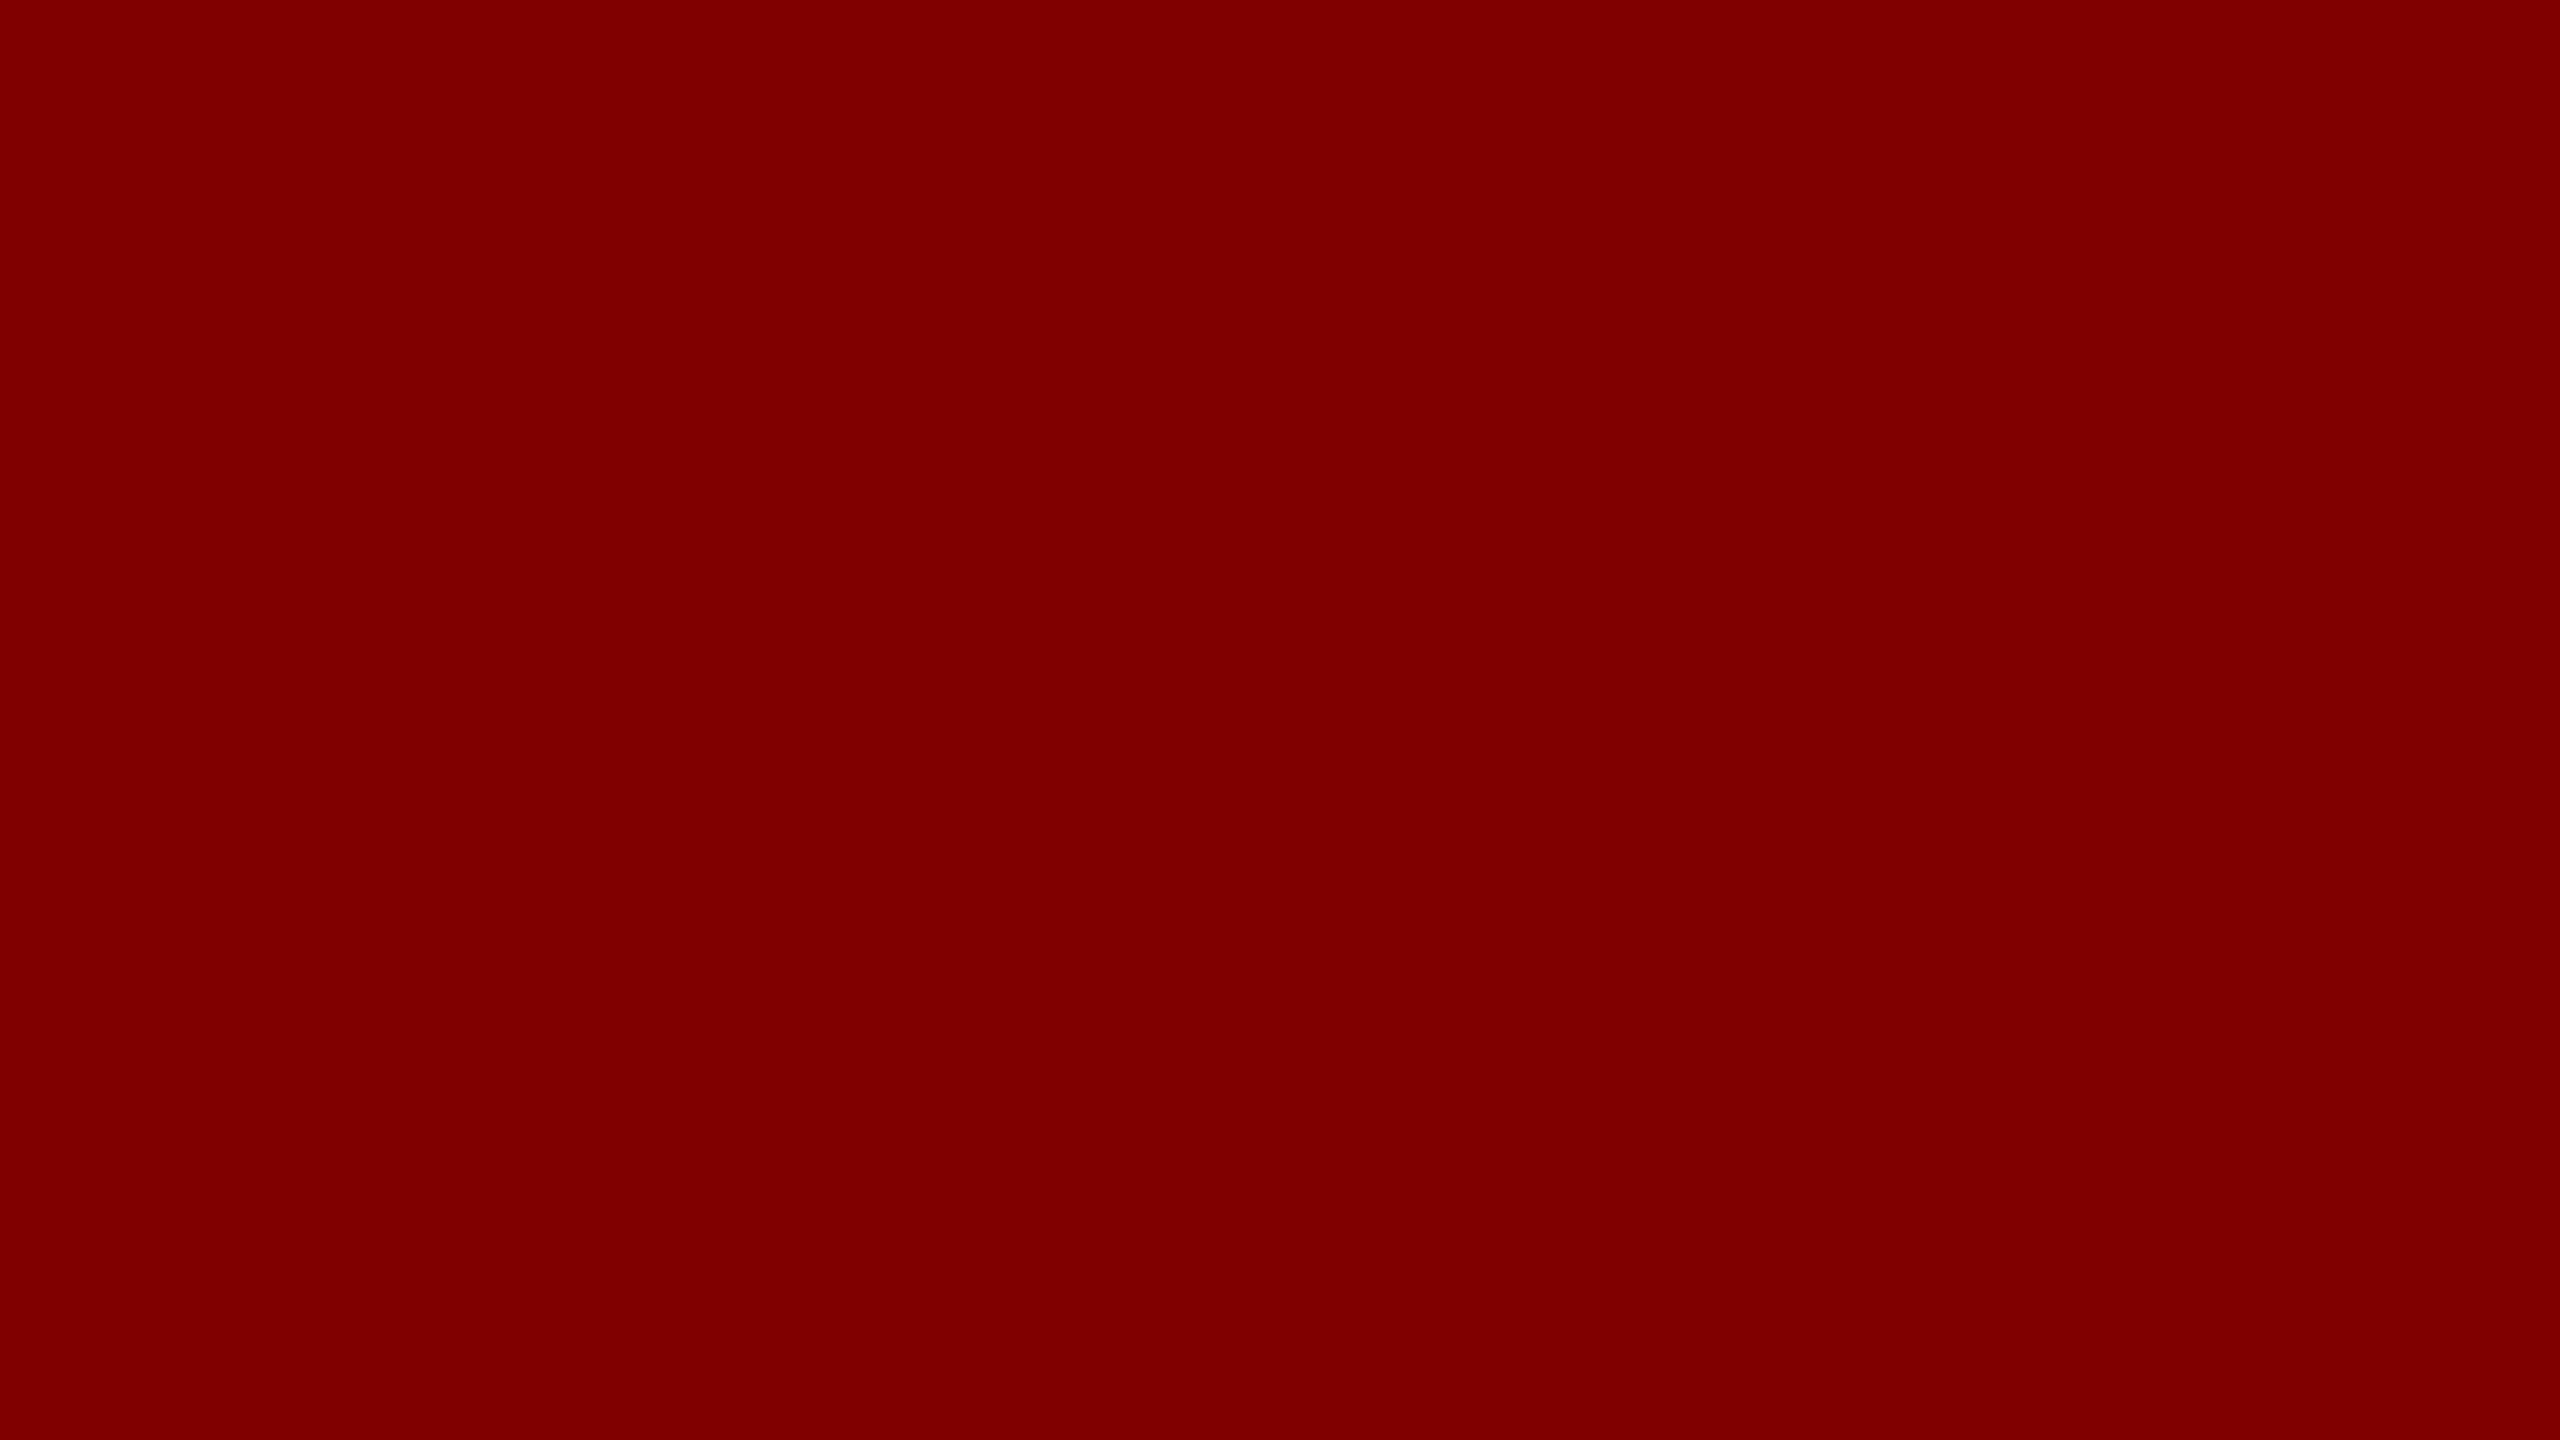 2560x1440 Maroon Web Solid Color Background